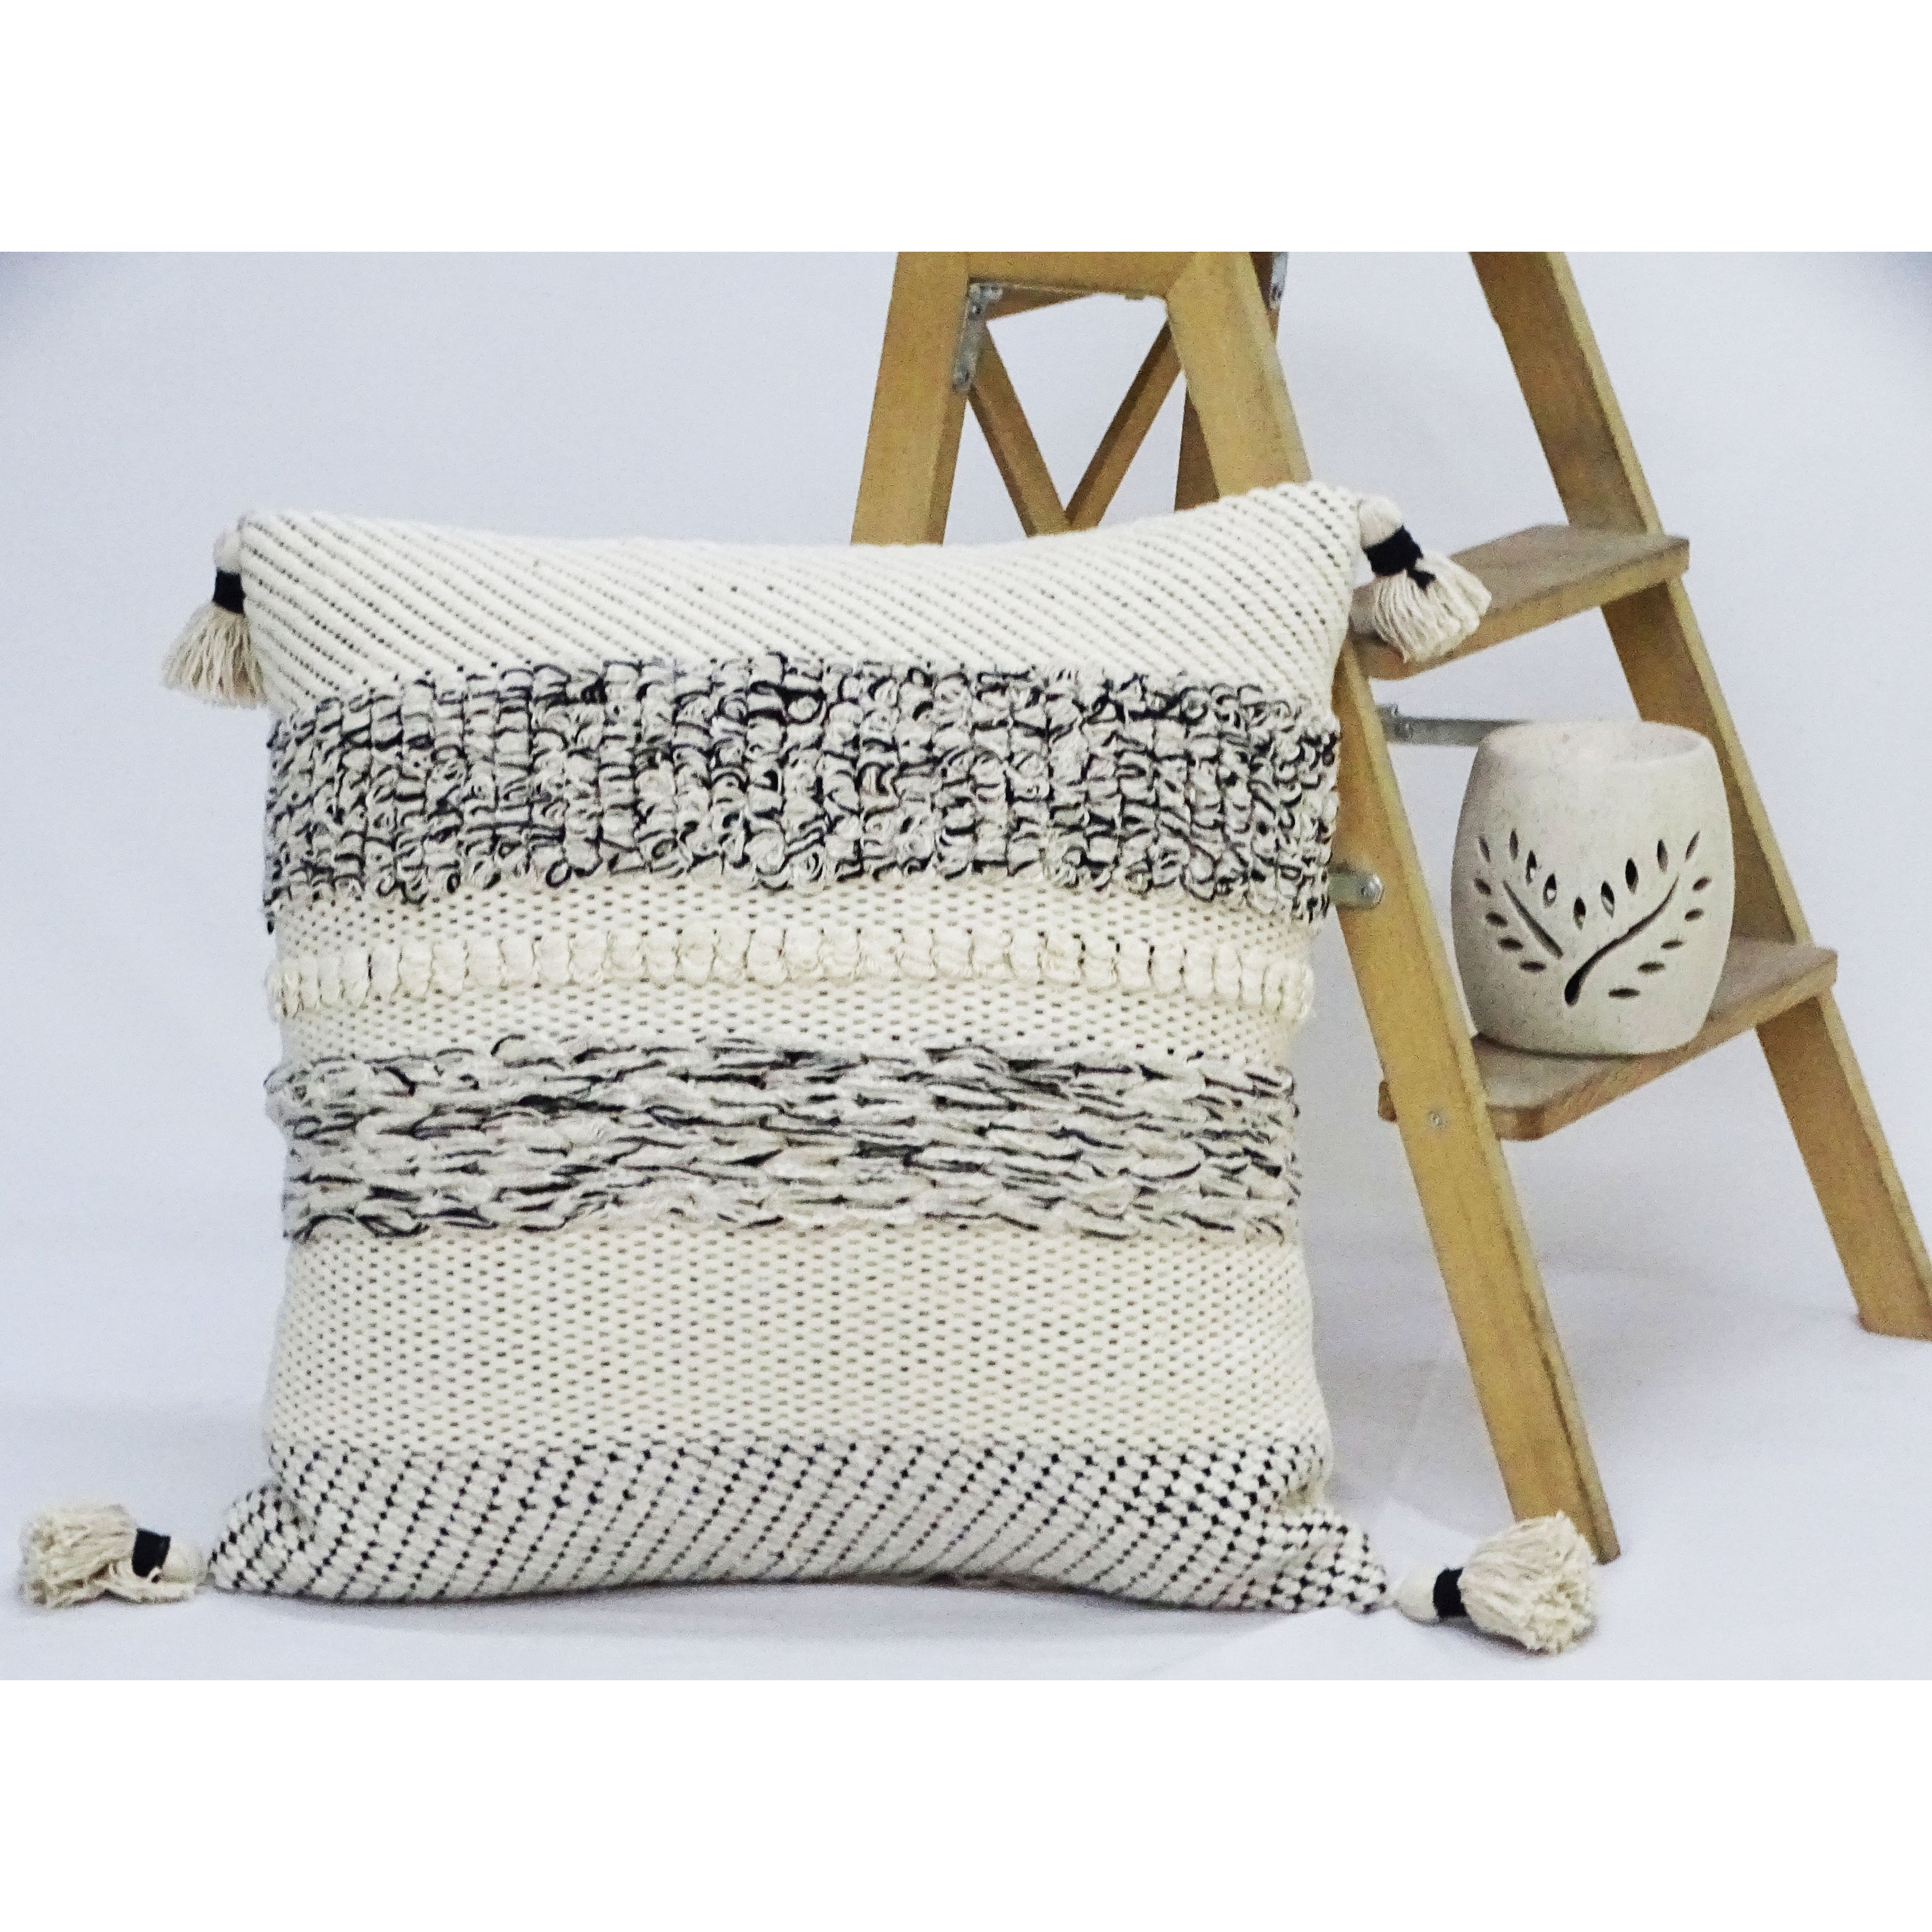 Chicos Home 22 X 22 Throw Pillow For Couch With Tassels Overstock 32731416